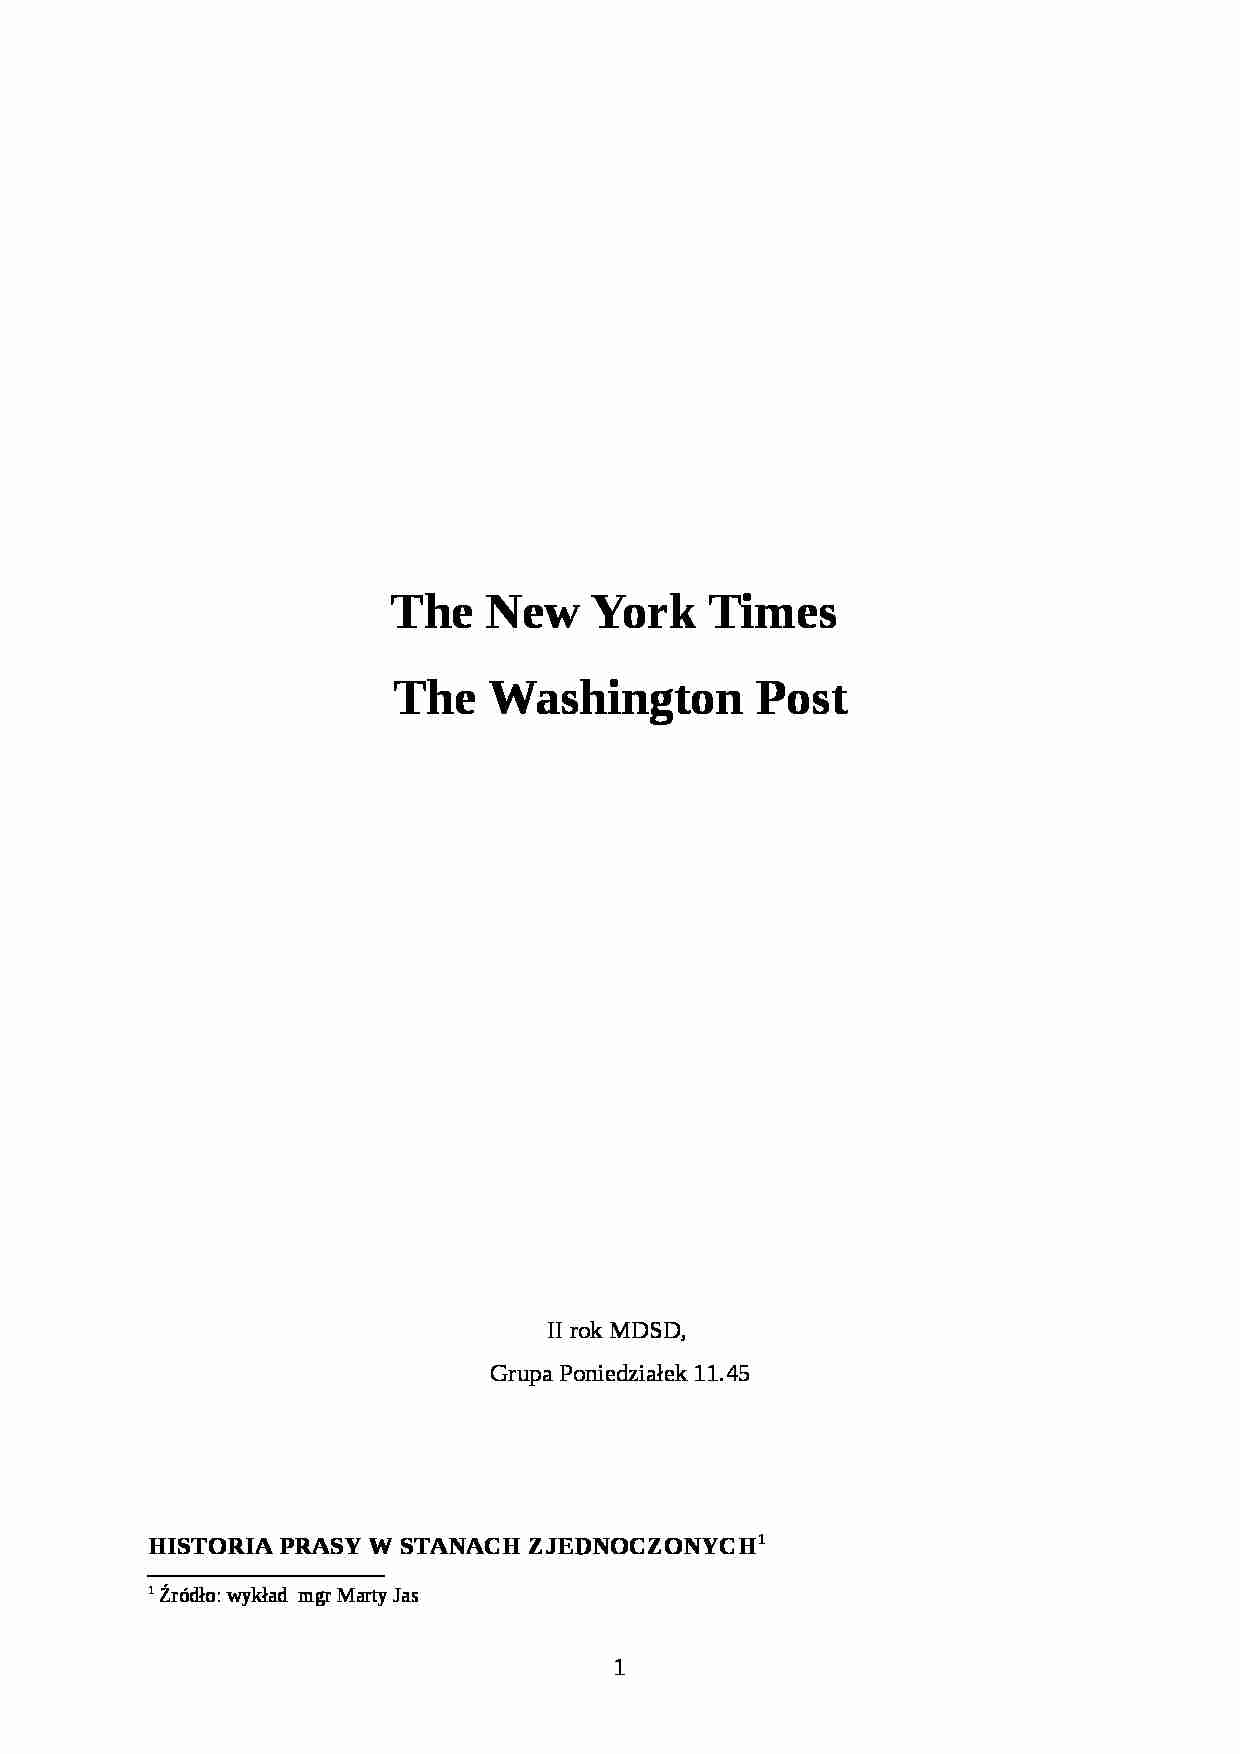 New York Times i Washington Post - strona 1